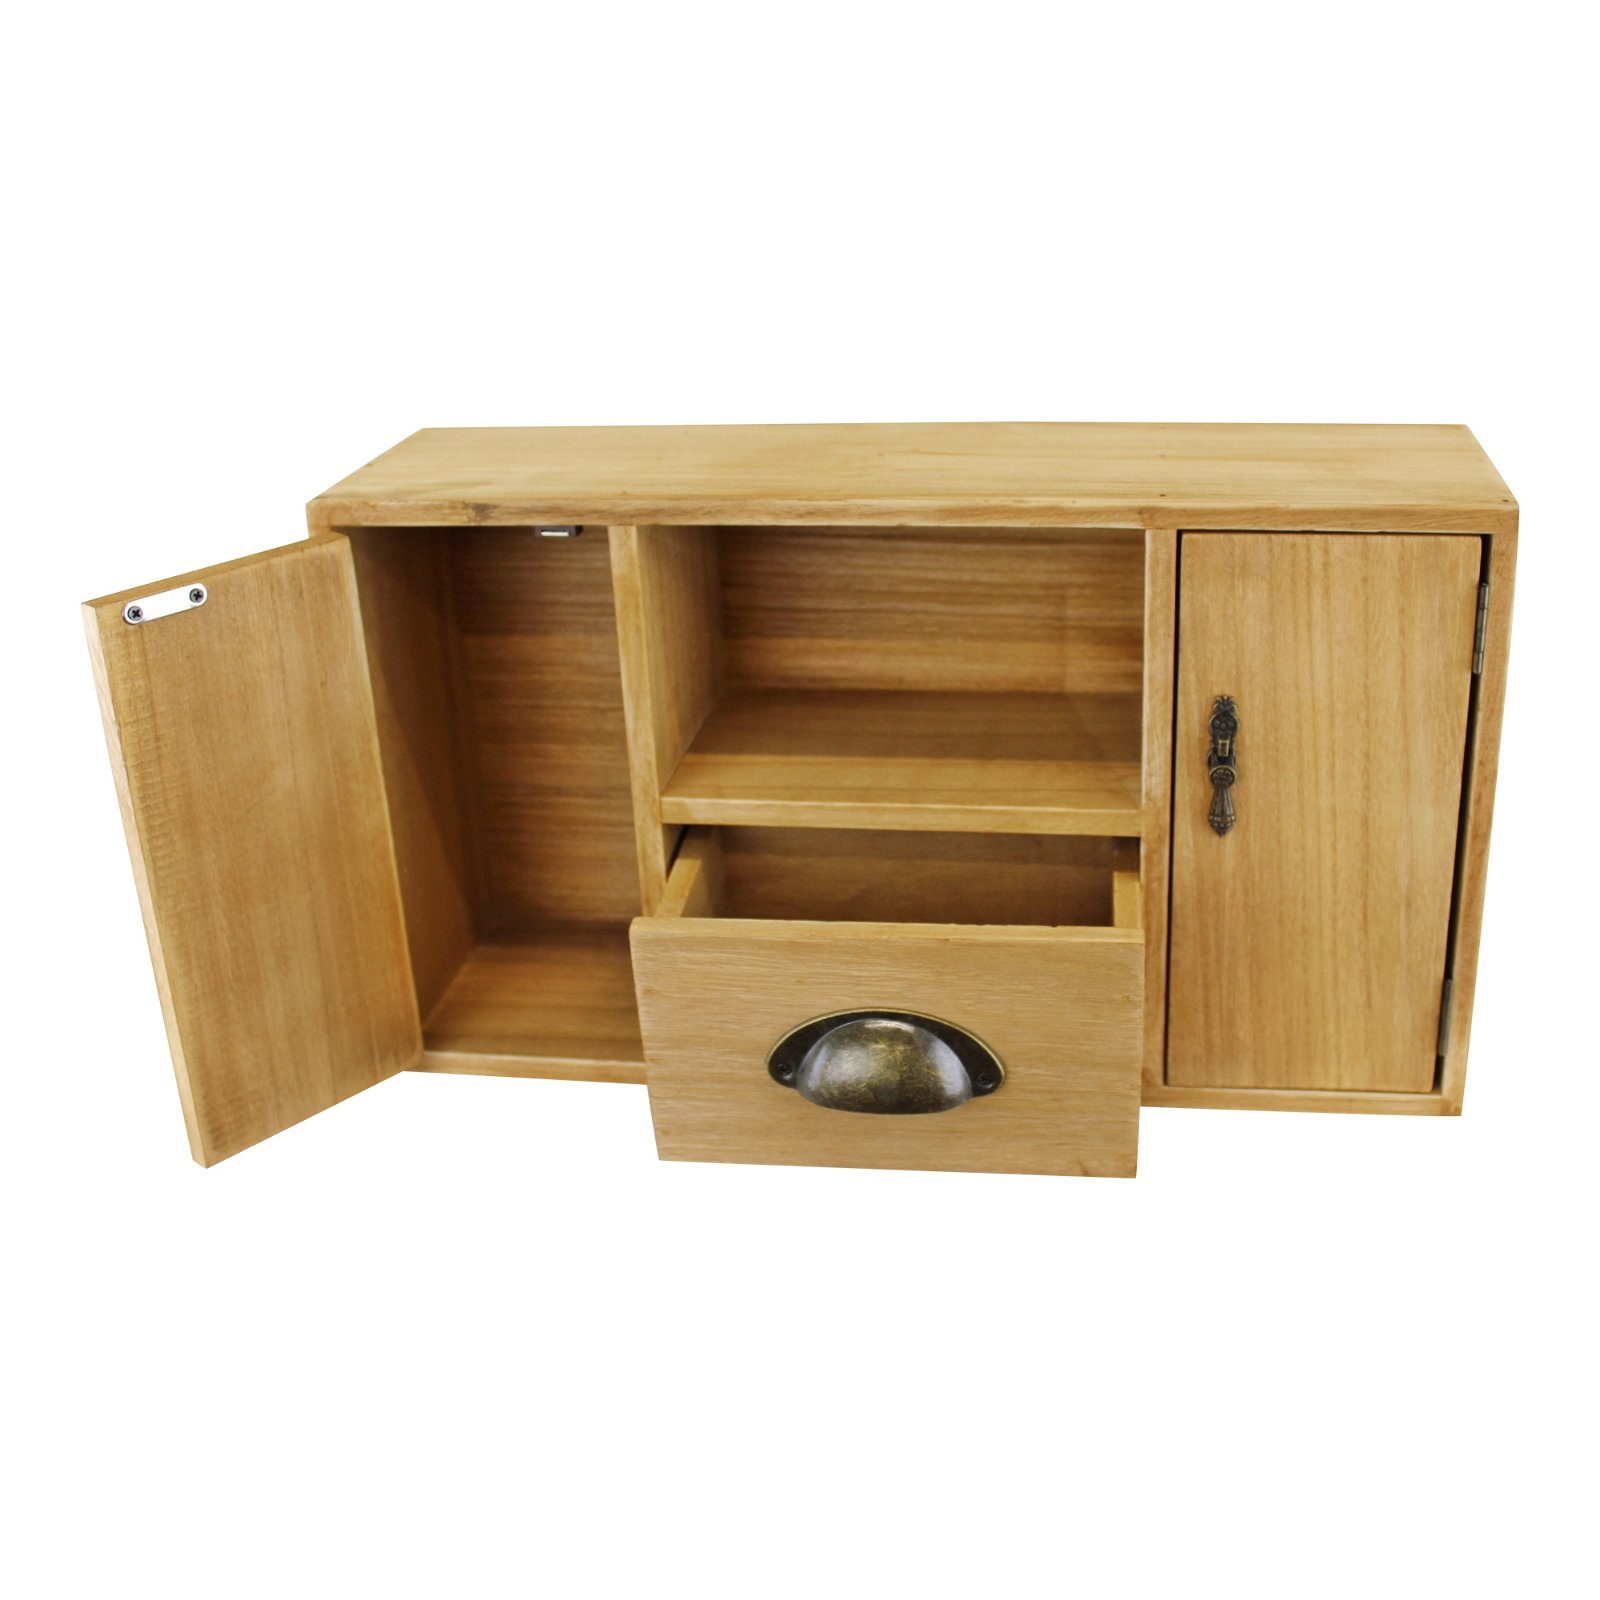 Small Wooden Cabinet with Cupboards, Drawer and Shelf